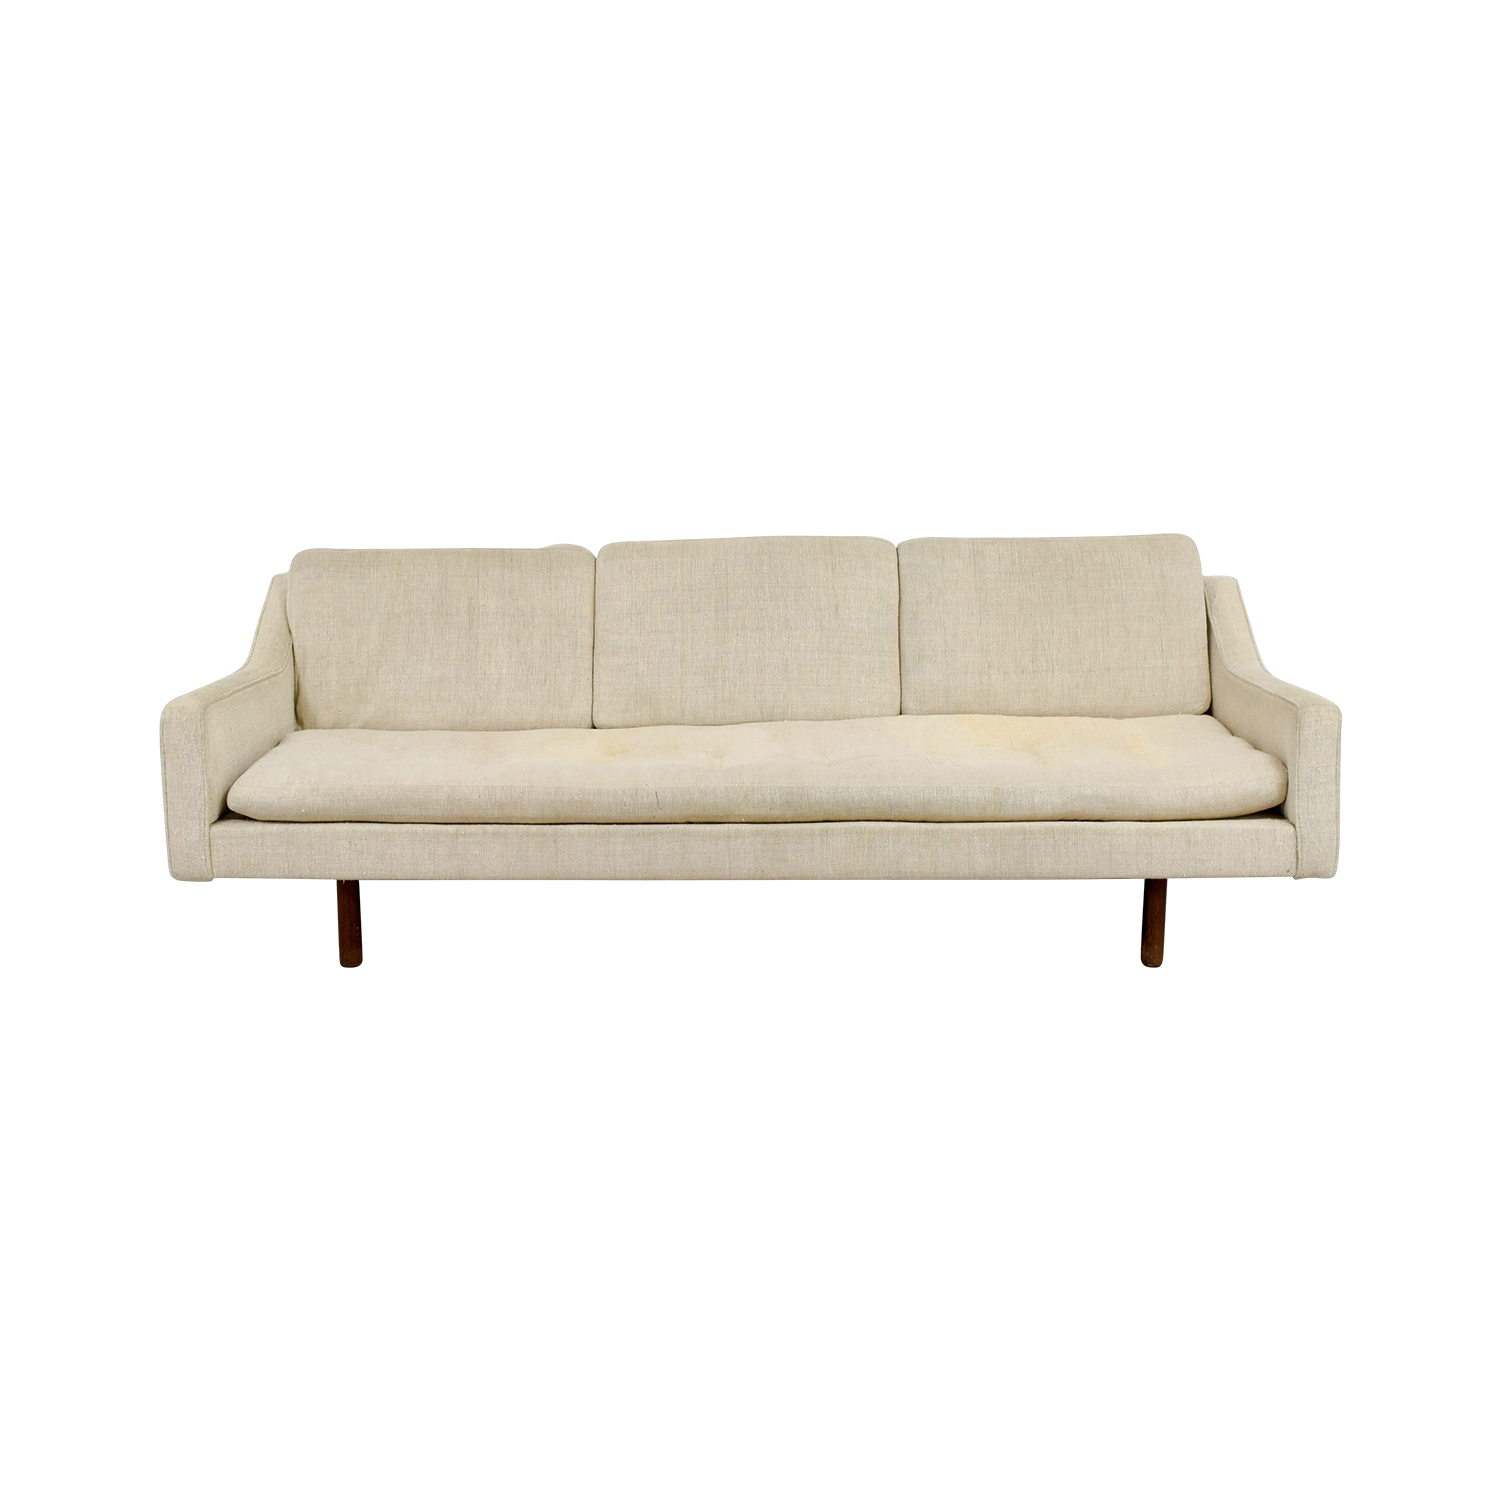 Vintage Mid Century White Single Cushion Sofa Used